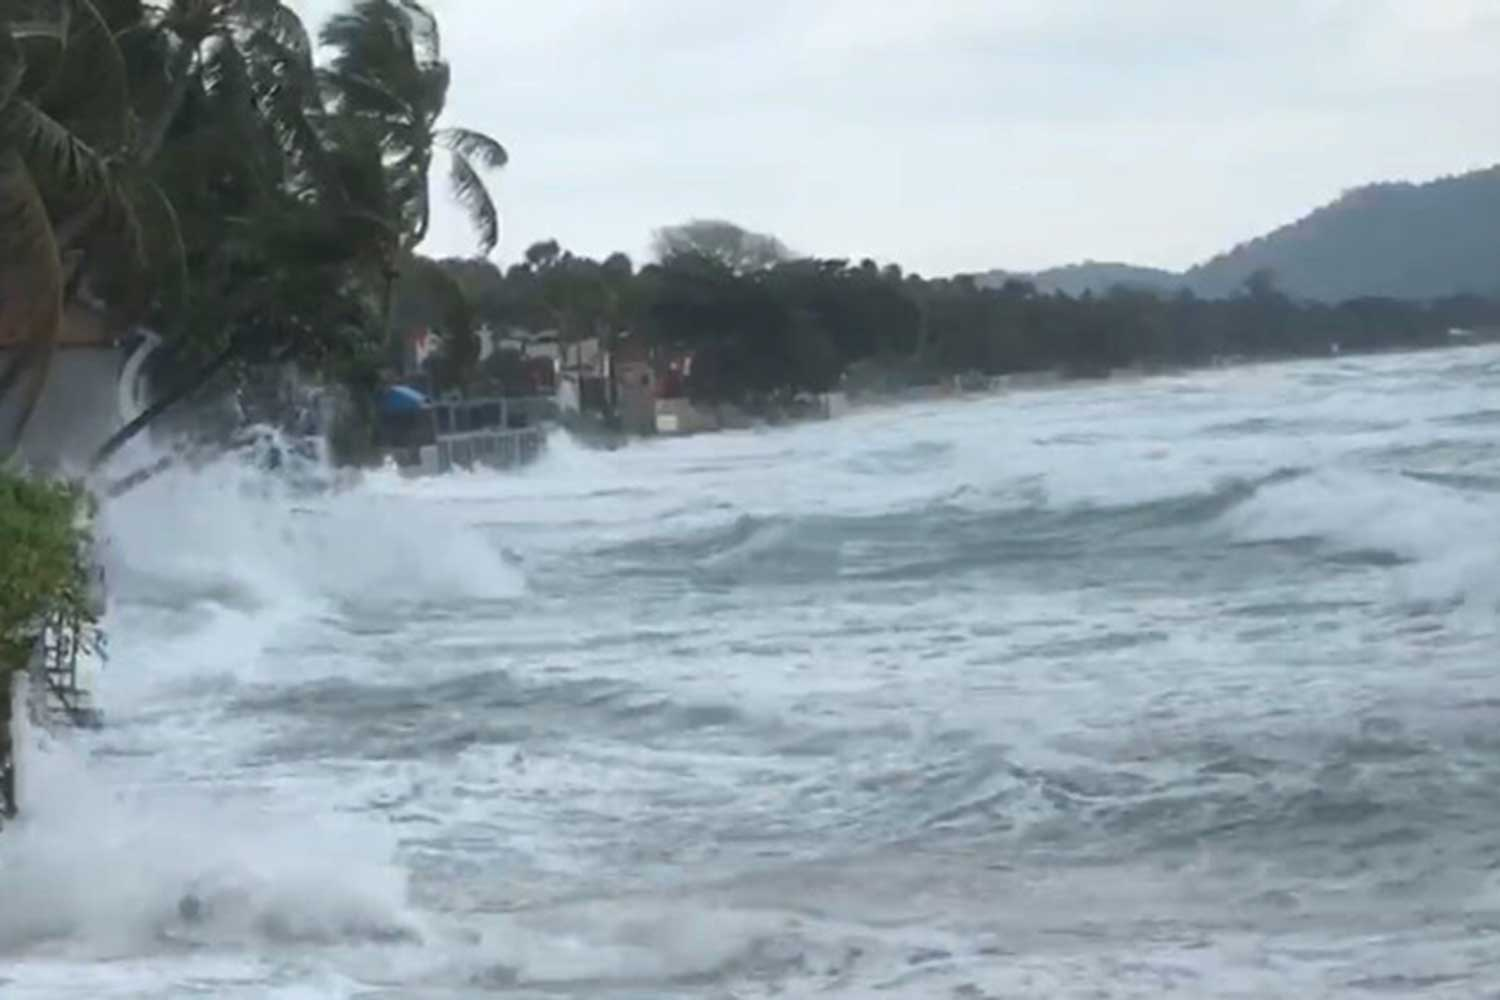 Wind-driven waves rush ashore in Koh Samui, where swimmers and boaters are being warned to stay out of the water. (Photo by Supapong Chaolan)